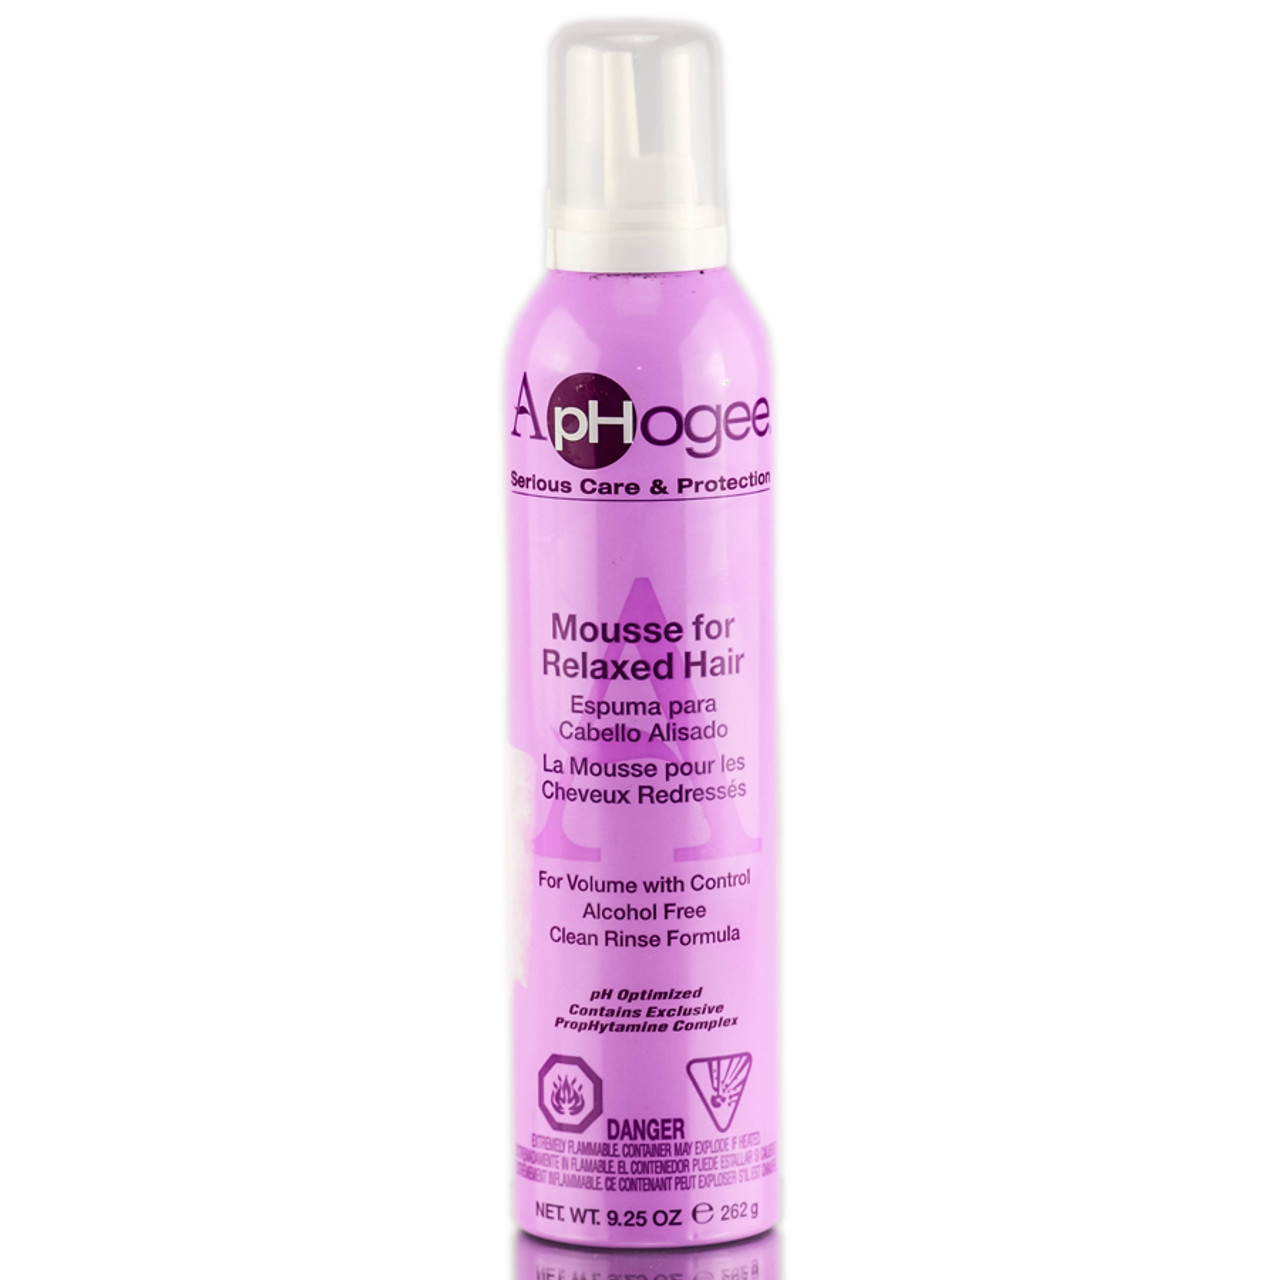 style hair with mousse aphogee styling mousse for relaxed hair sleekshop 5874 | aphogee styling mousse for relaxed hair 217 19187.1472573823